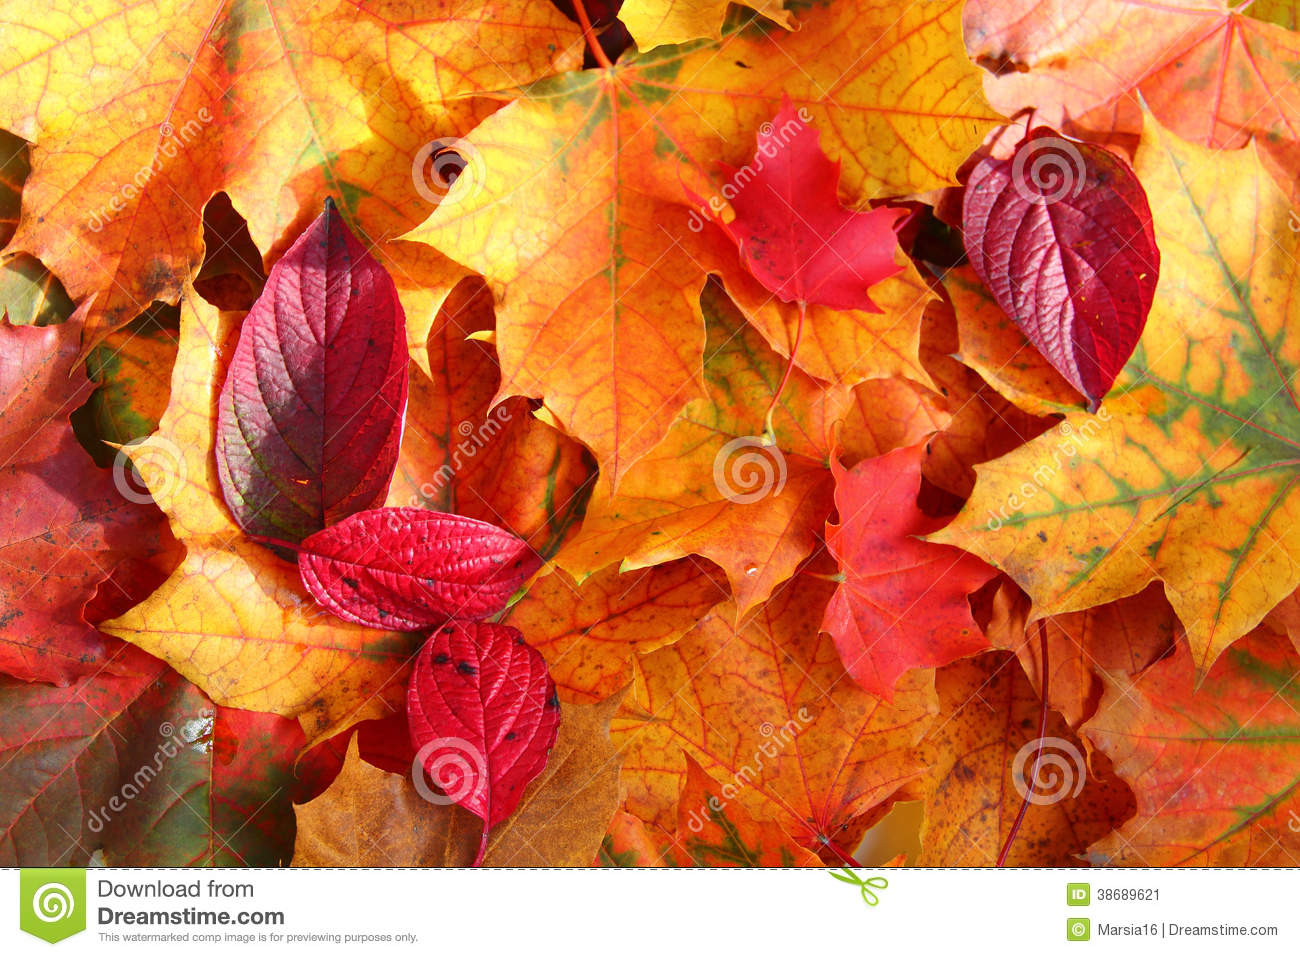 Orange Fall Wallpaper Autumn Leaves In Sunlight Stock Image Image Of Brown